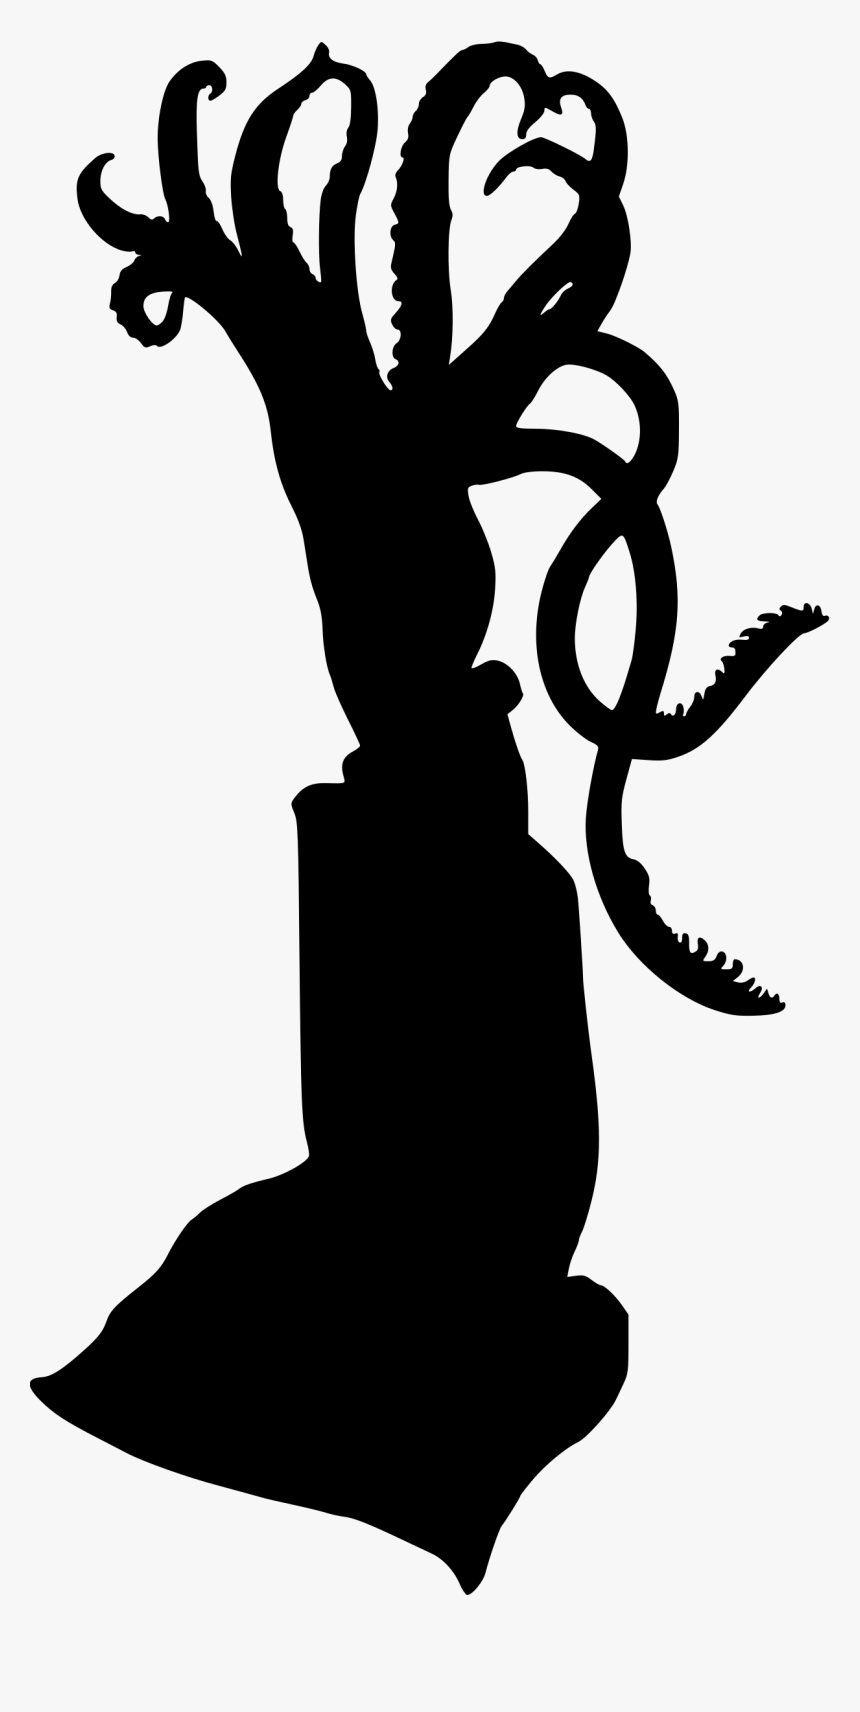 Giant Squid Silhouette Clip Art - Squid Clipart Silhouette Transparent, HD Png Download, Free Download